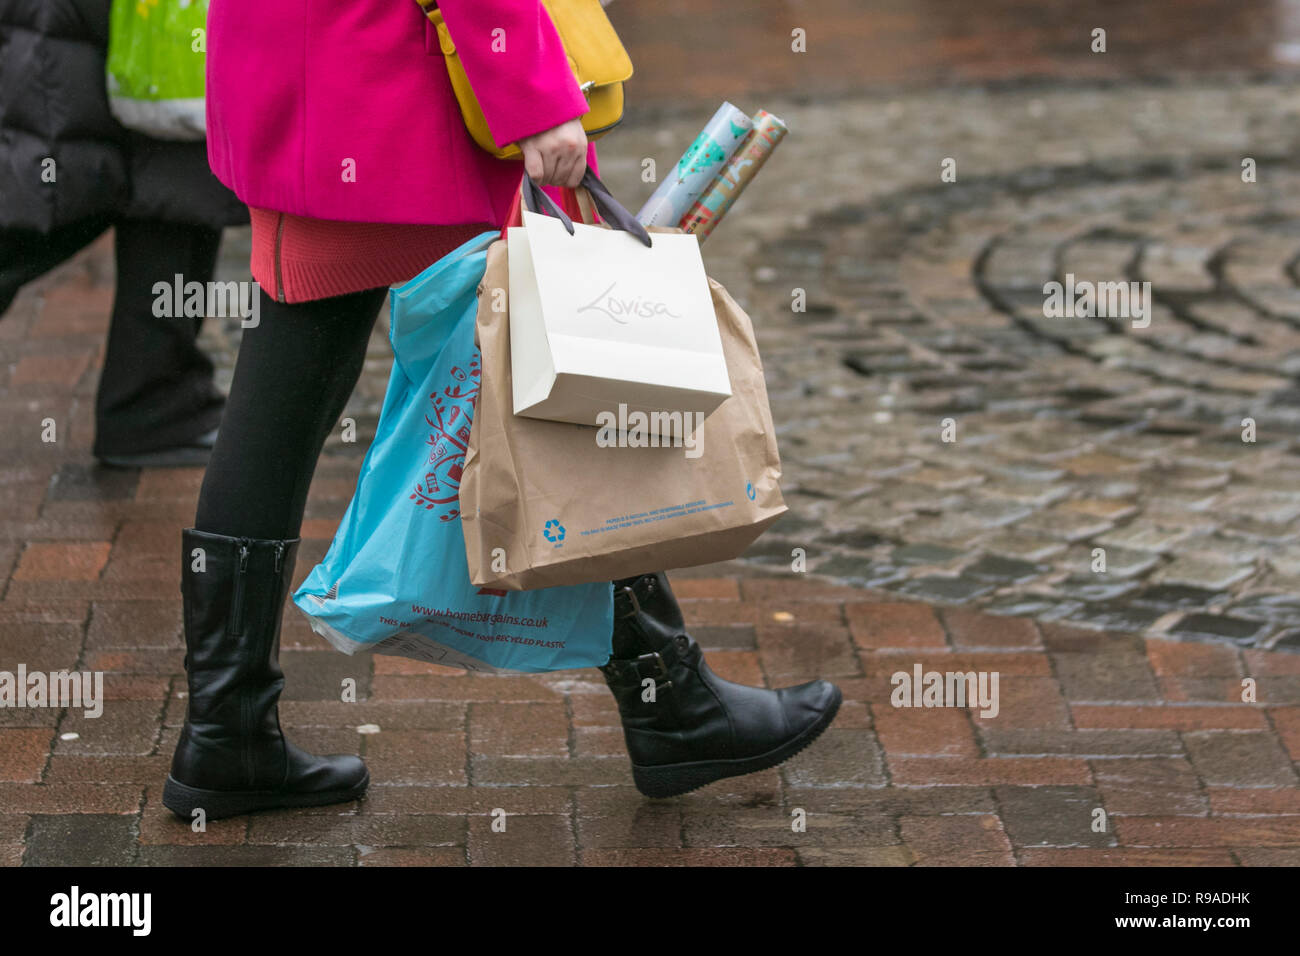 Preston, Lancashire.  21st Dec. UK Weather. Wet & windy day for Christmas shoppers as the sale signs go up in retail outlets discounting items across the store in an attempt to stimulate festive high street sales. Credit: MediaWorldImages/Alamy Live News - Stock Image